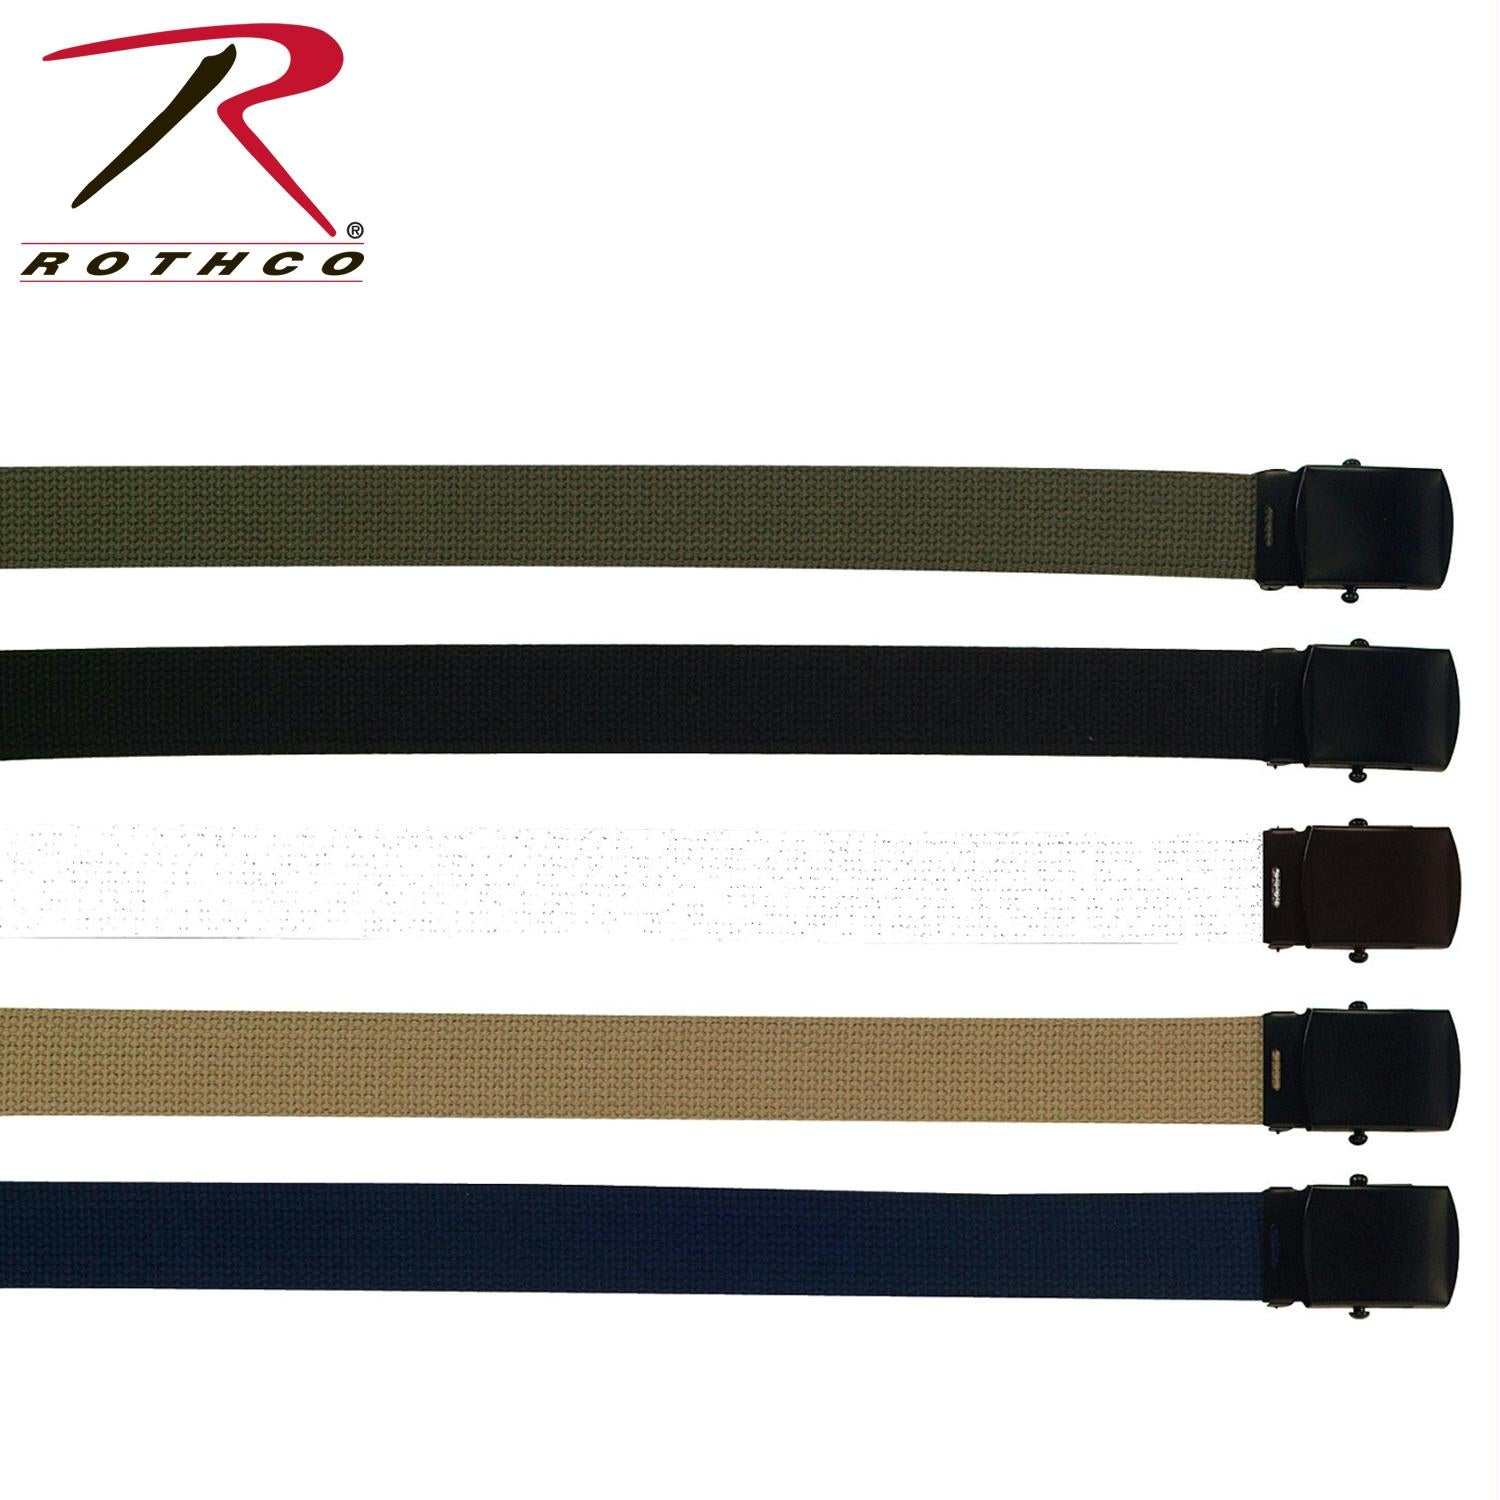 Rothco Military Web Belts w/ Black Buckle - White / 54 Inches